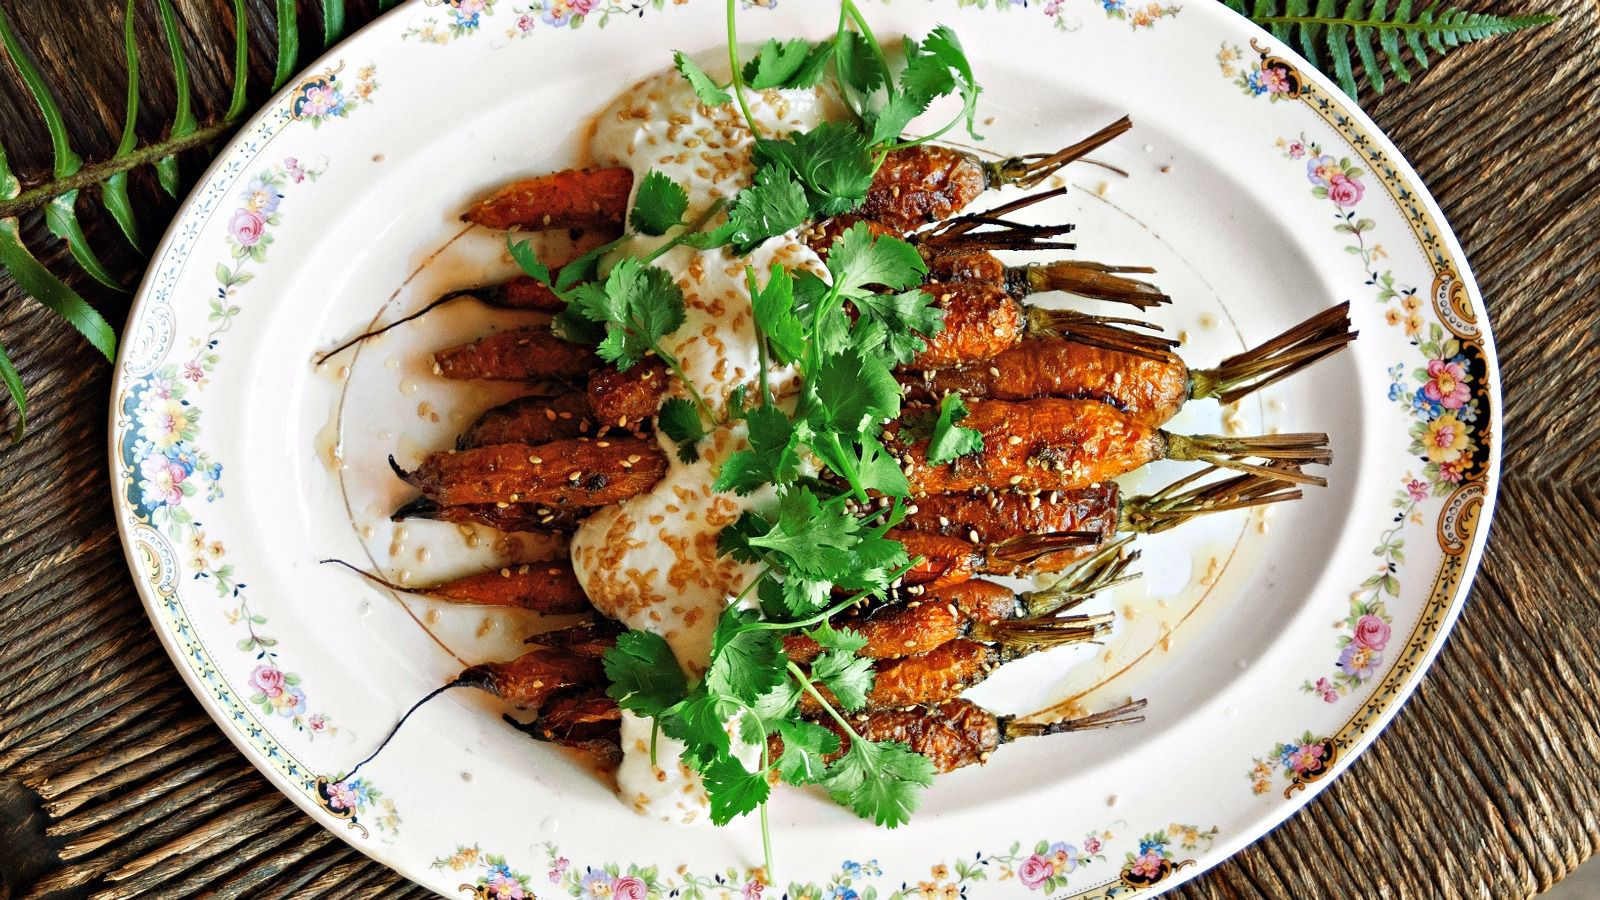 Roasted carrots with za'atar topped with Greek yogurt, cilantro and sesame seeds was a favorite of our taste testers.